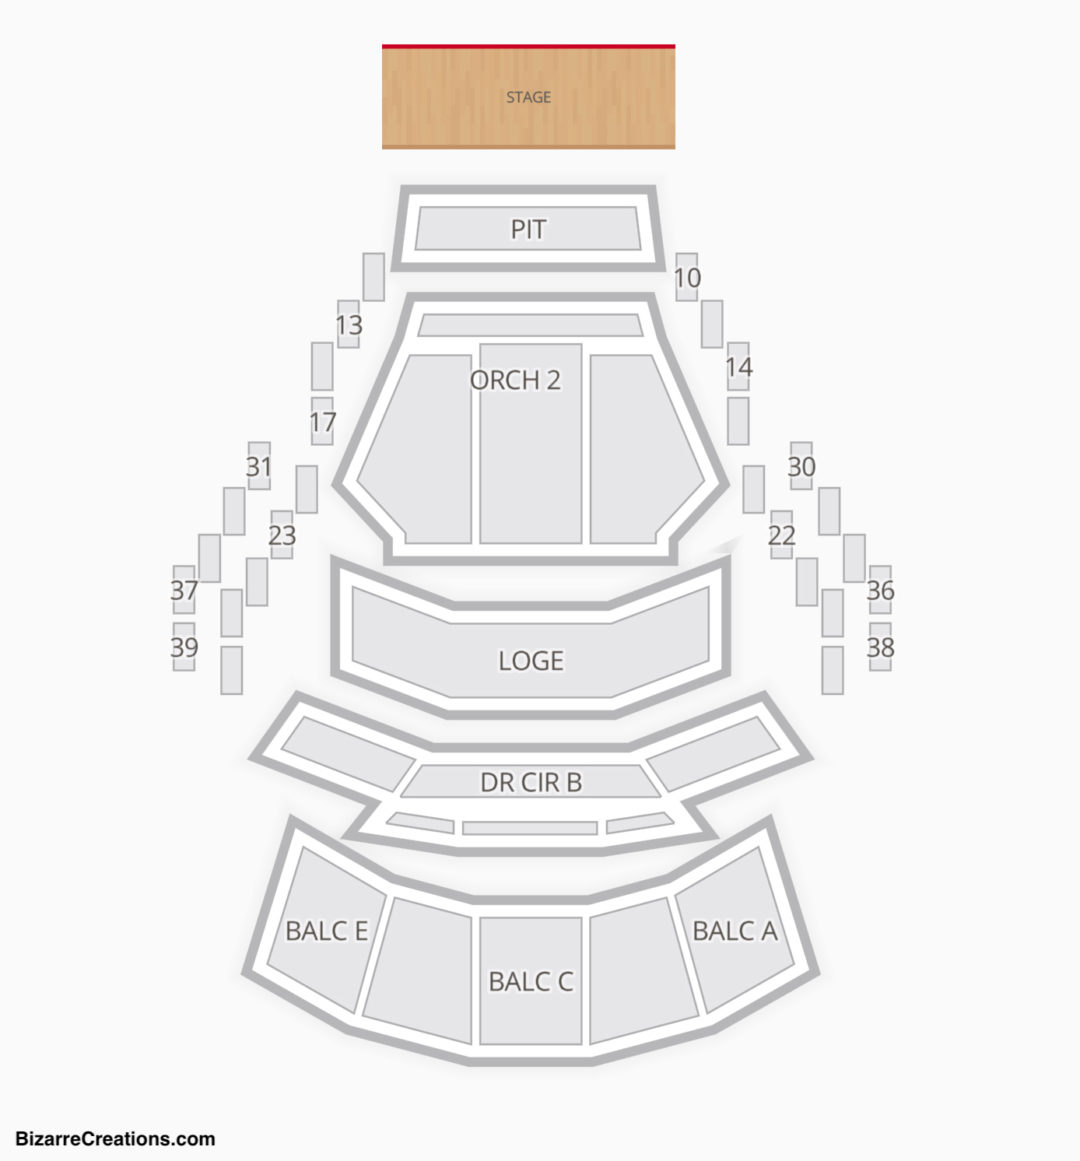 Mahaffey theater seating chart seating charts tickets